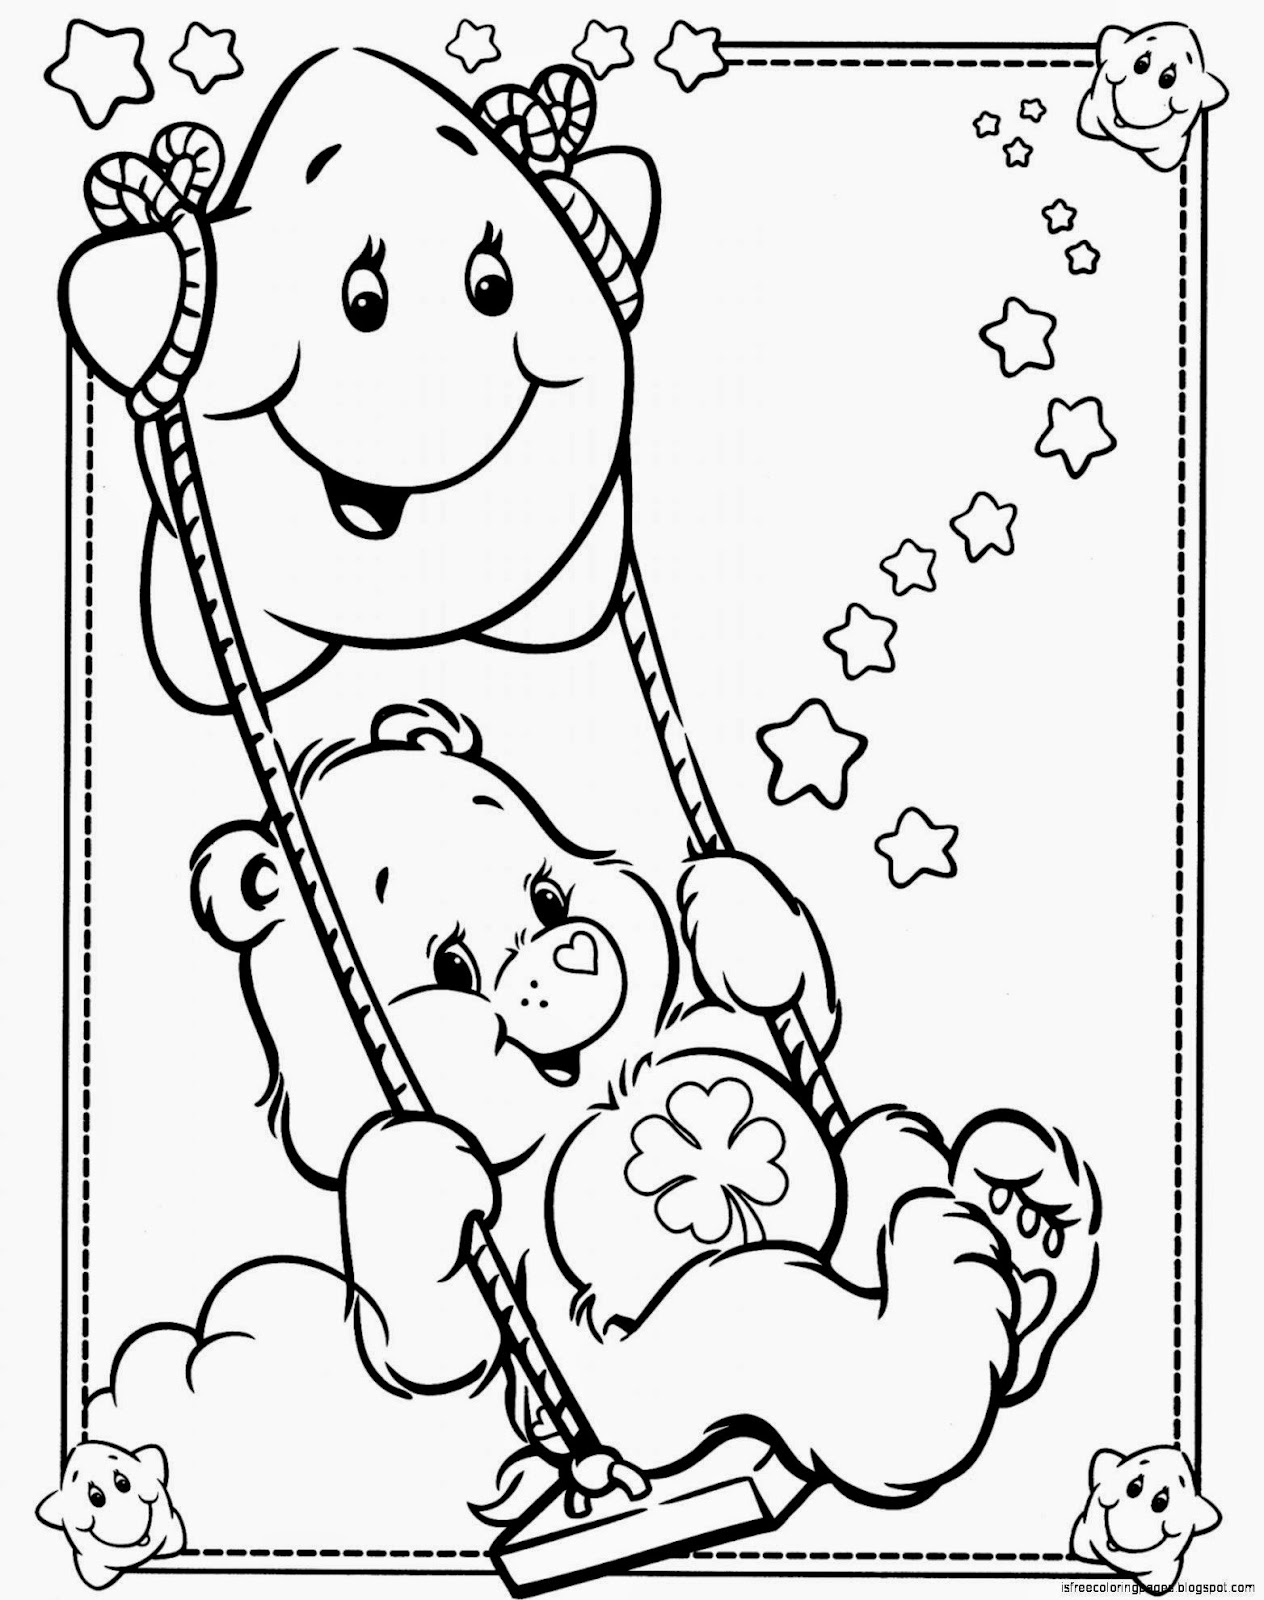 Care Bears Coloring Pages Free Coloring Pages Care Bears Printable Coloring Pages